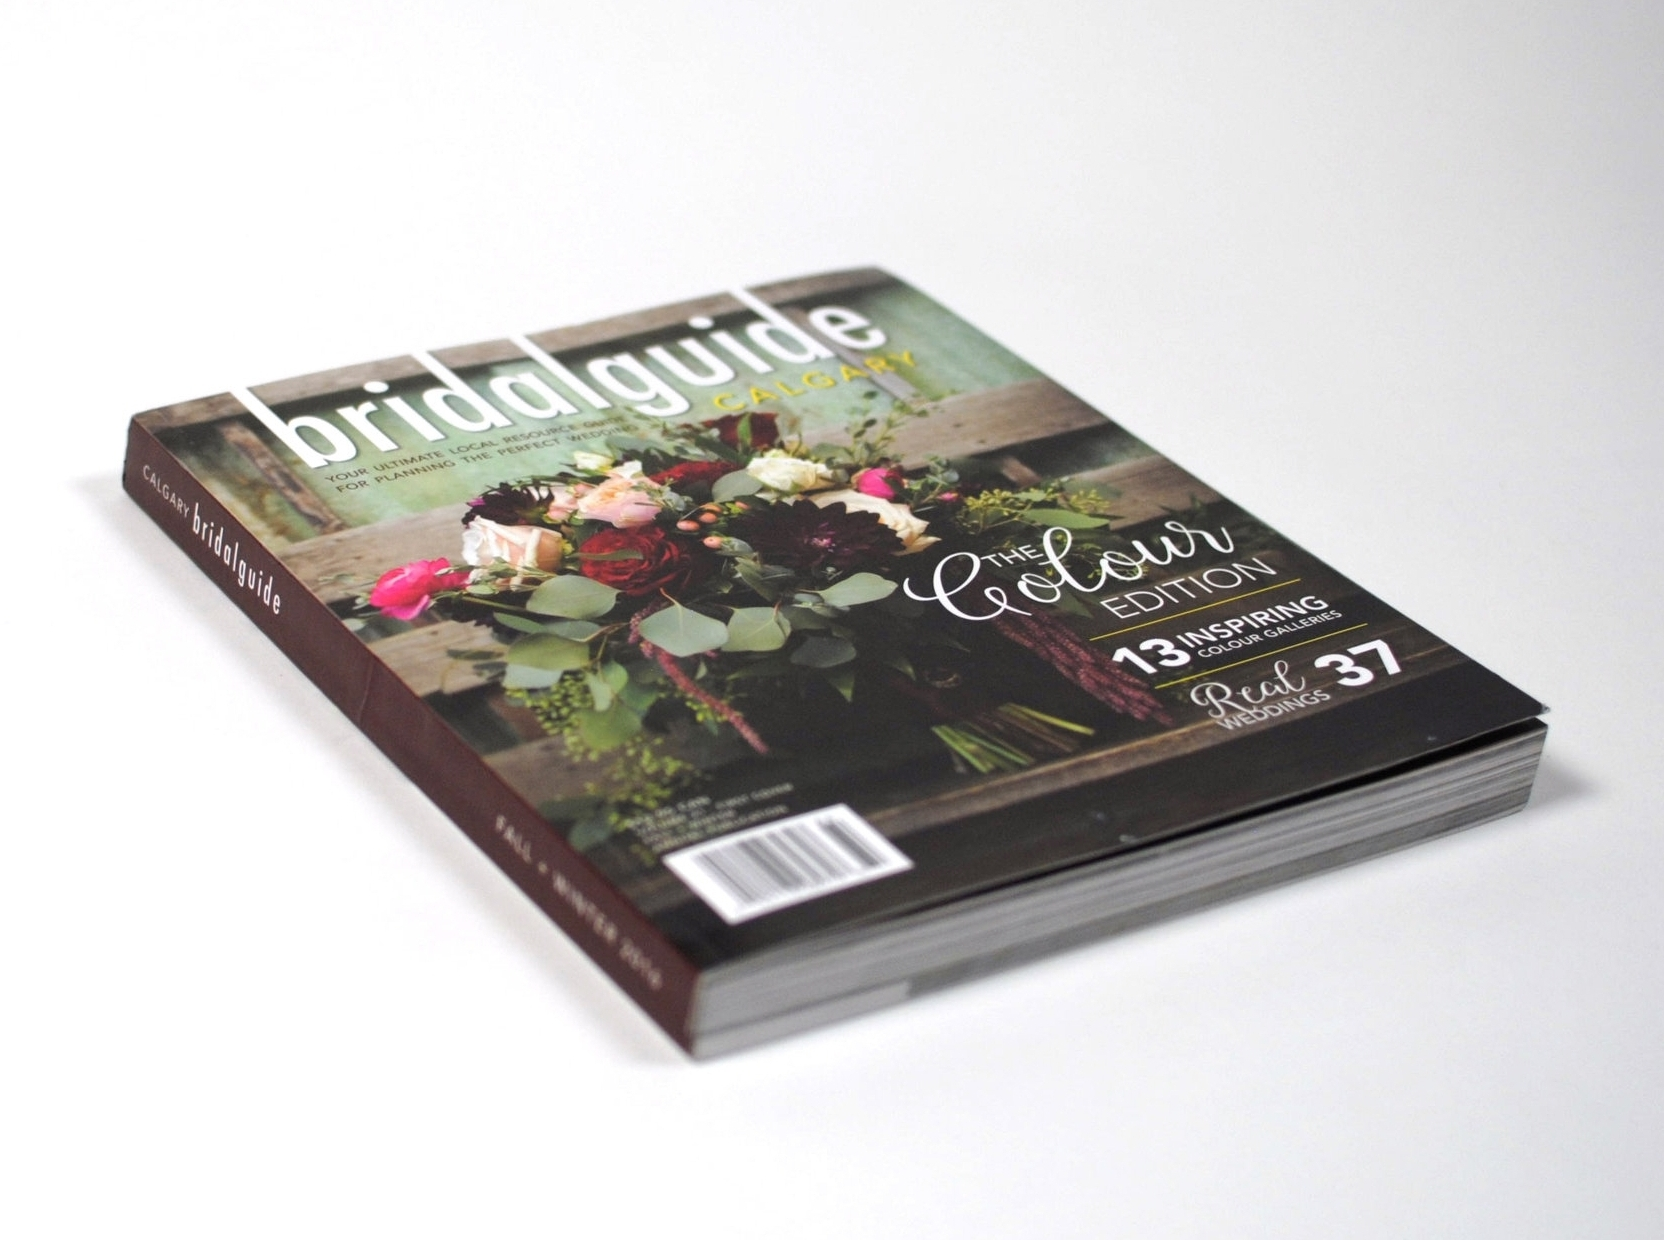 """Calgary Bride's Bi-yearly publication """"Bridal Guide - Calgary"""" - Gritt Media Inc was the Art Director, designer, and production source for the Fall Winter 2016, Spring Summer 2017 publications."""